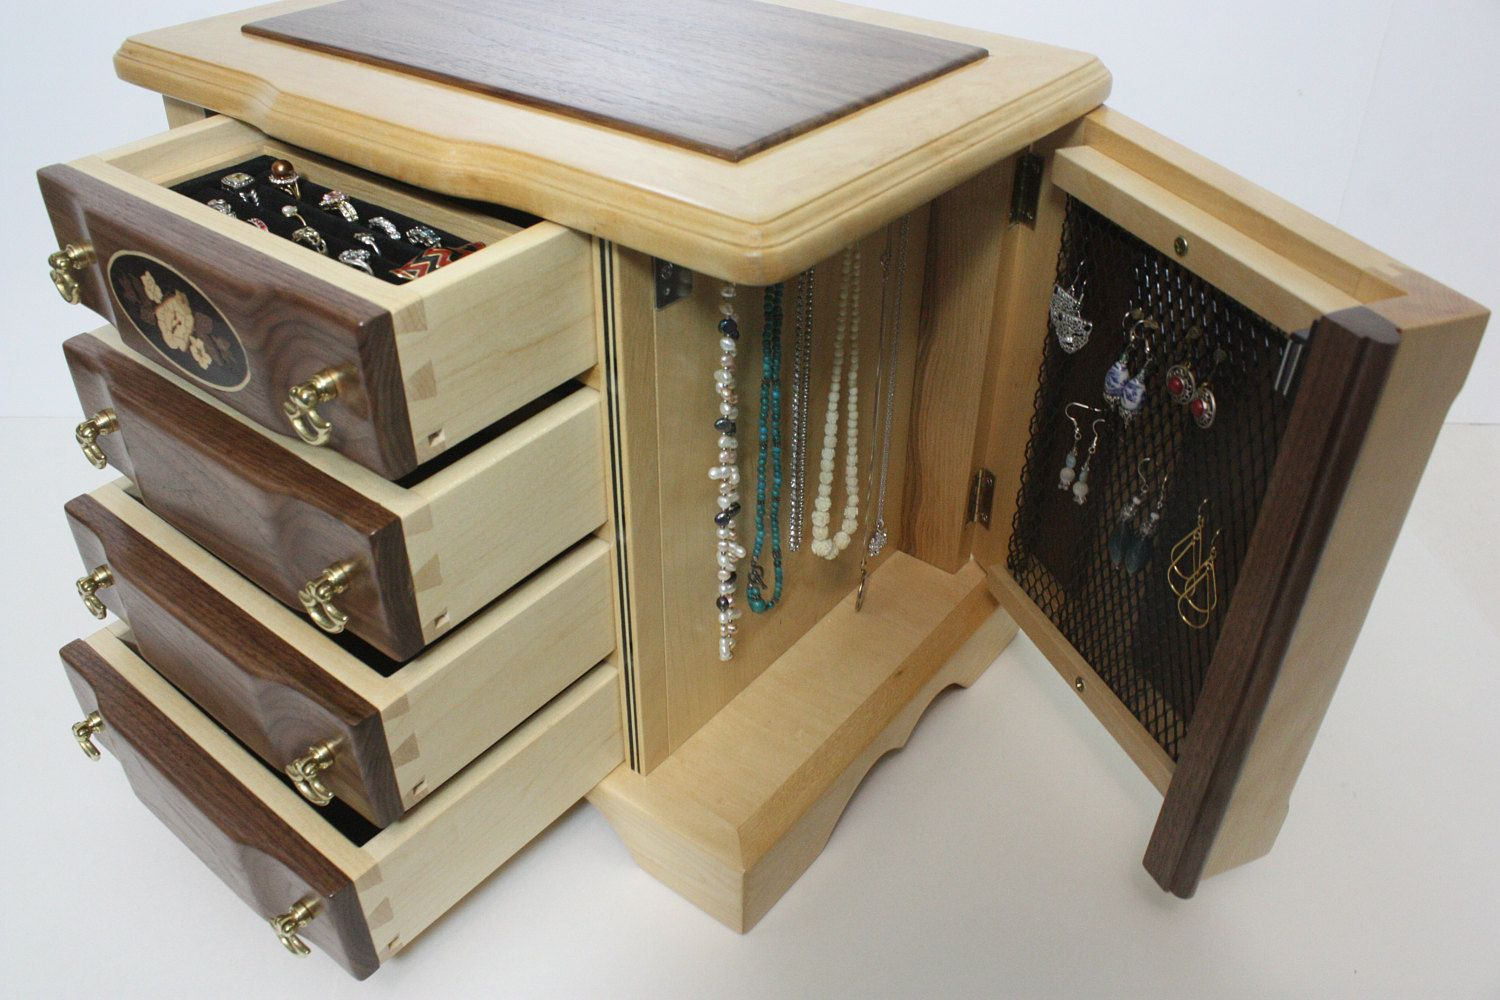 4 Drawer Jewelry Box with Swing Out Sides for Necklaces For Sale